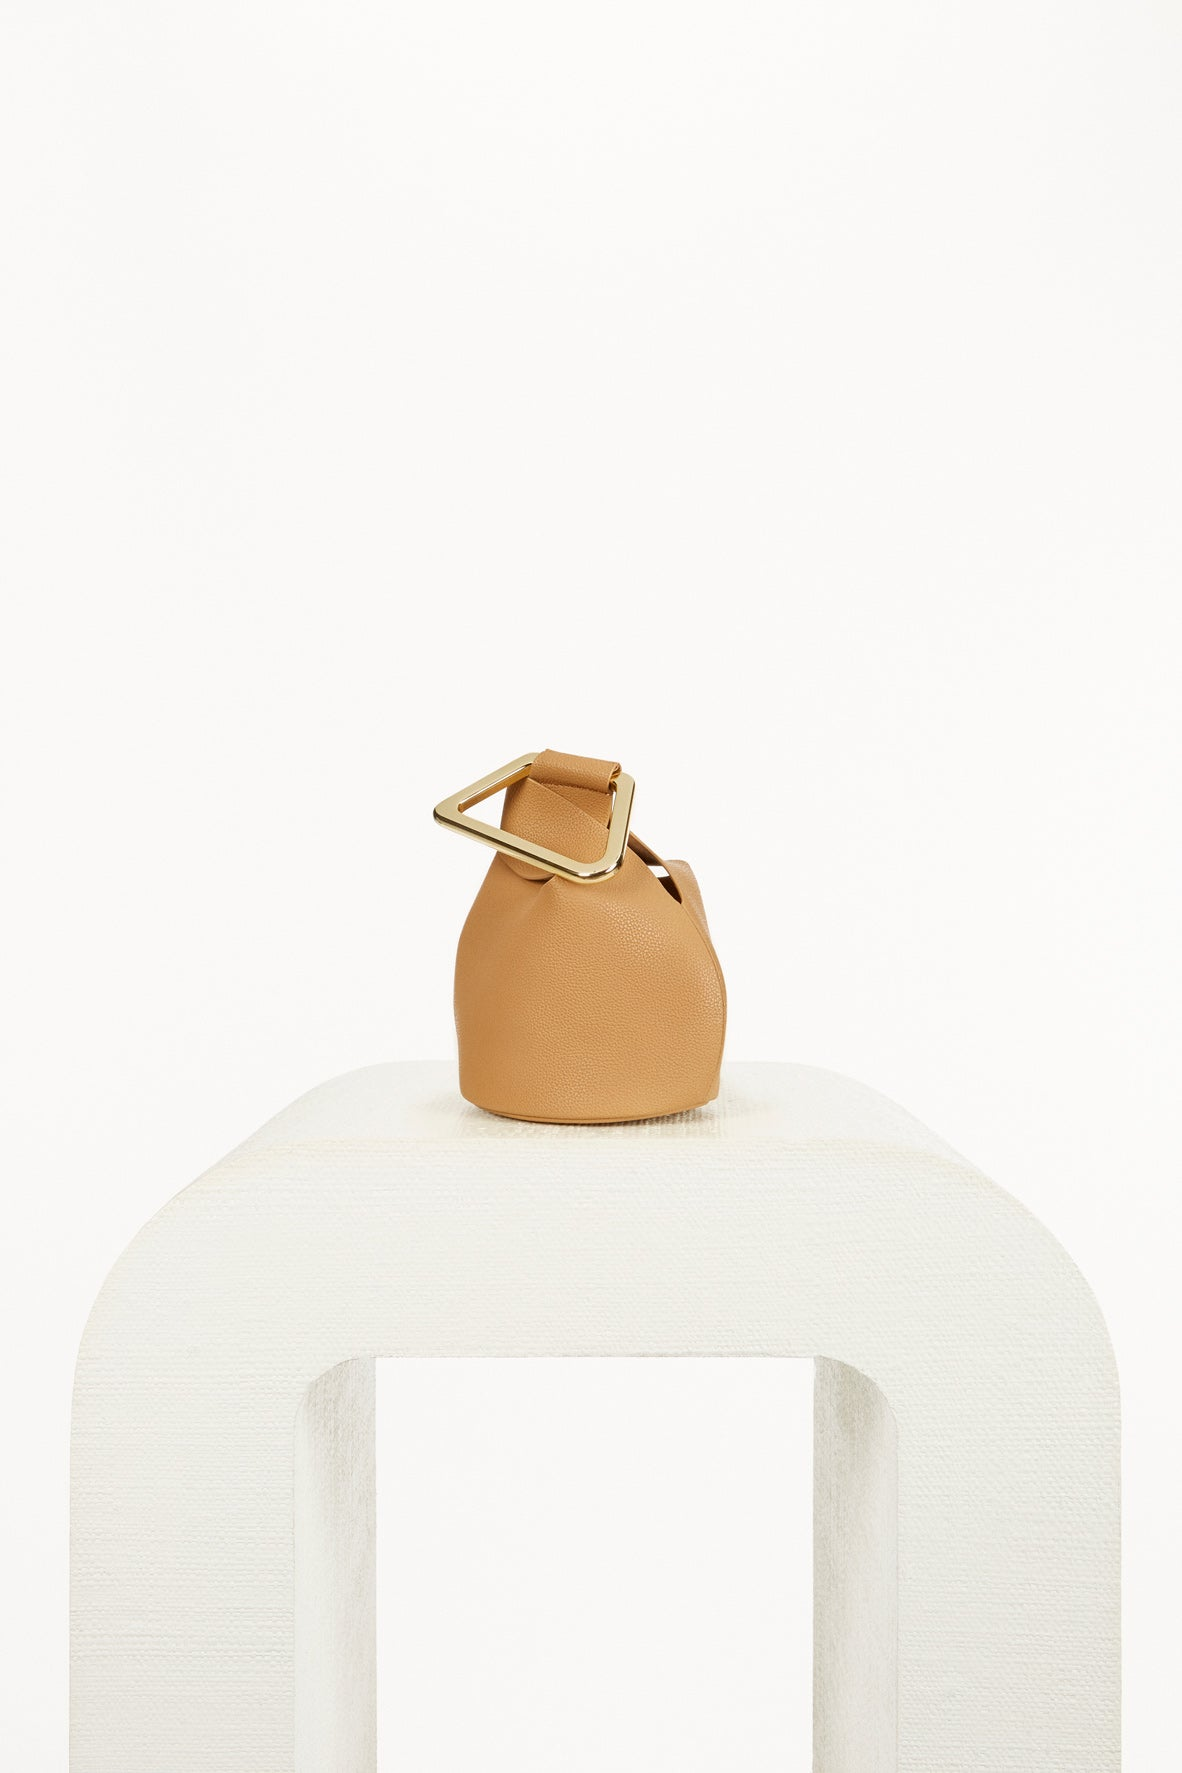 Mini Astraea Bag - Camel